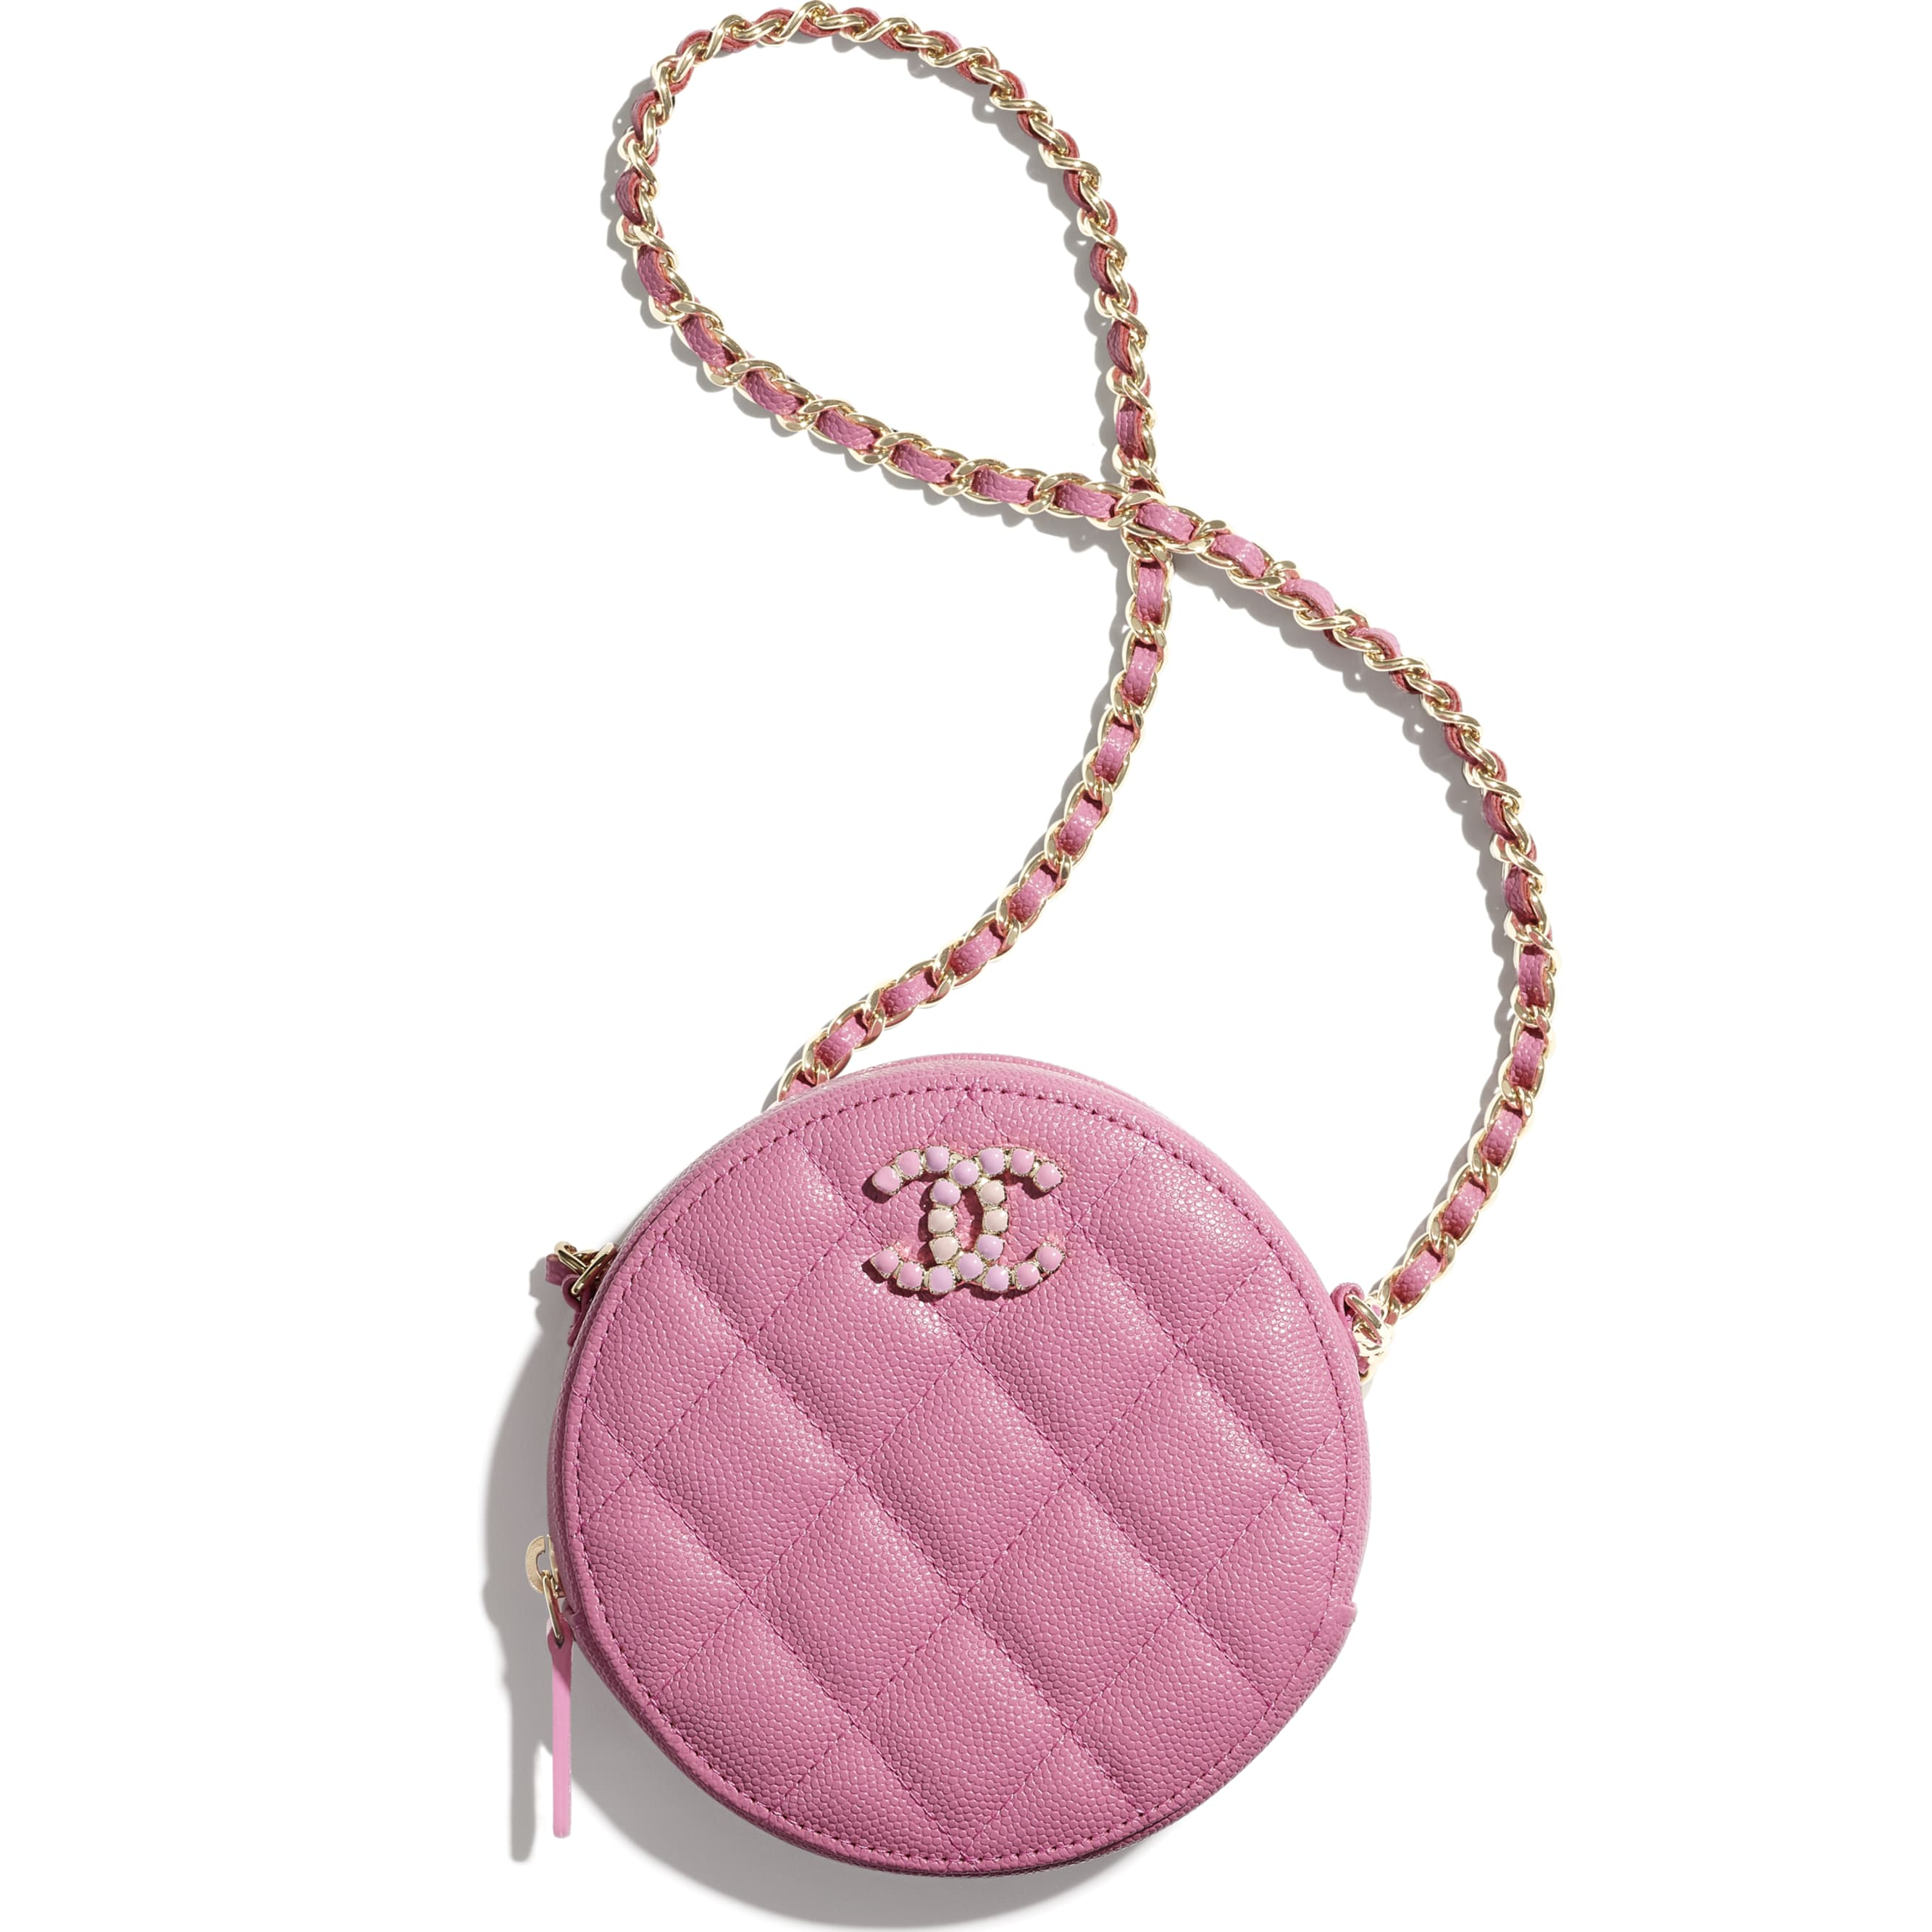 Clutch With Chain - Pink - Grained Calfskin & Laquered Gold-Tone Metal - CHANEL - Default view - see standard sized version